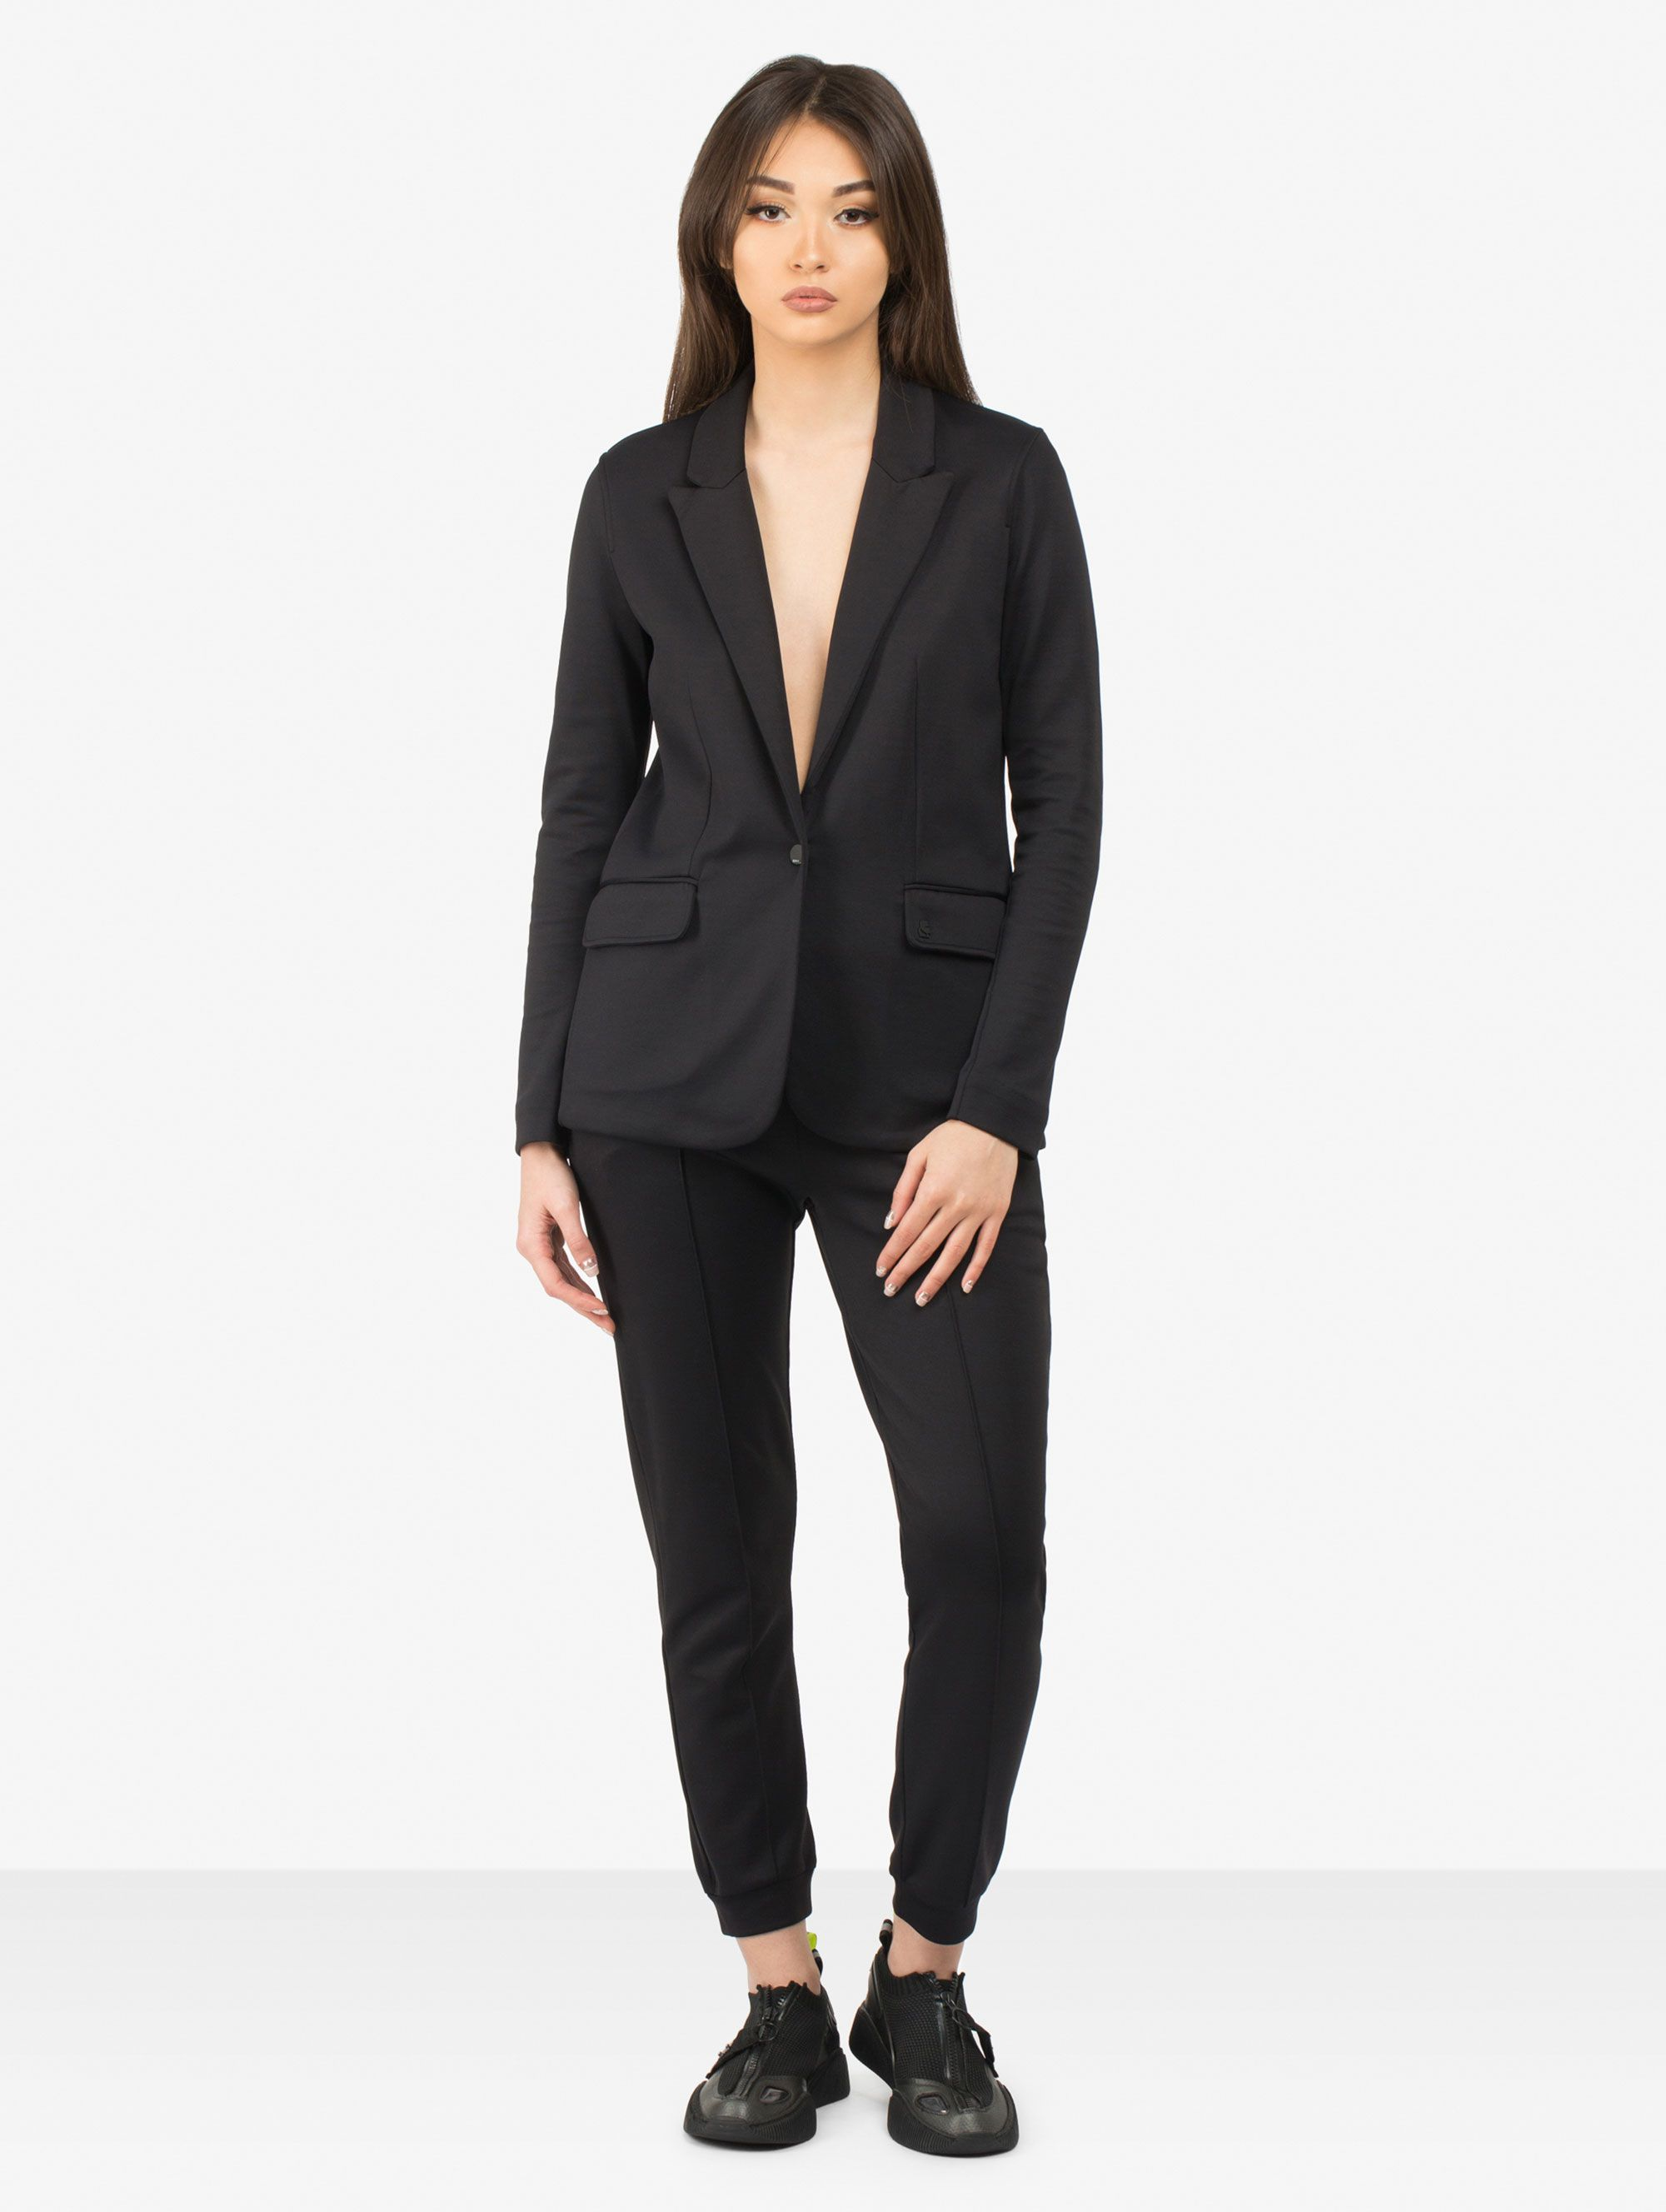 Karl Lagerfeld Rue St-Guillaume Trousers